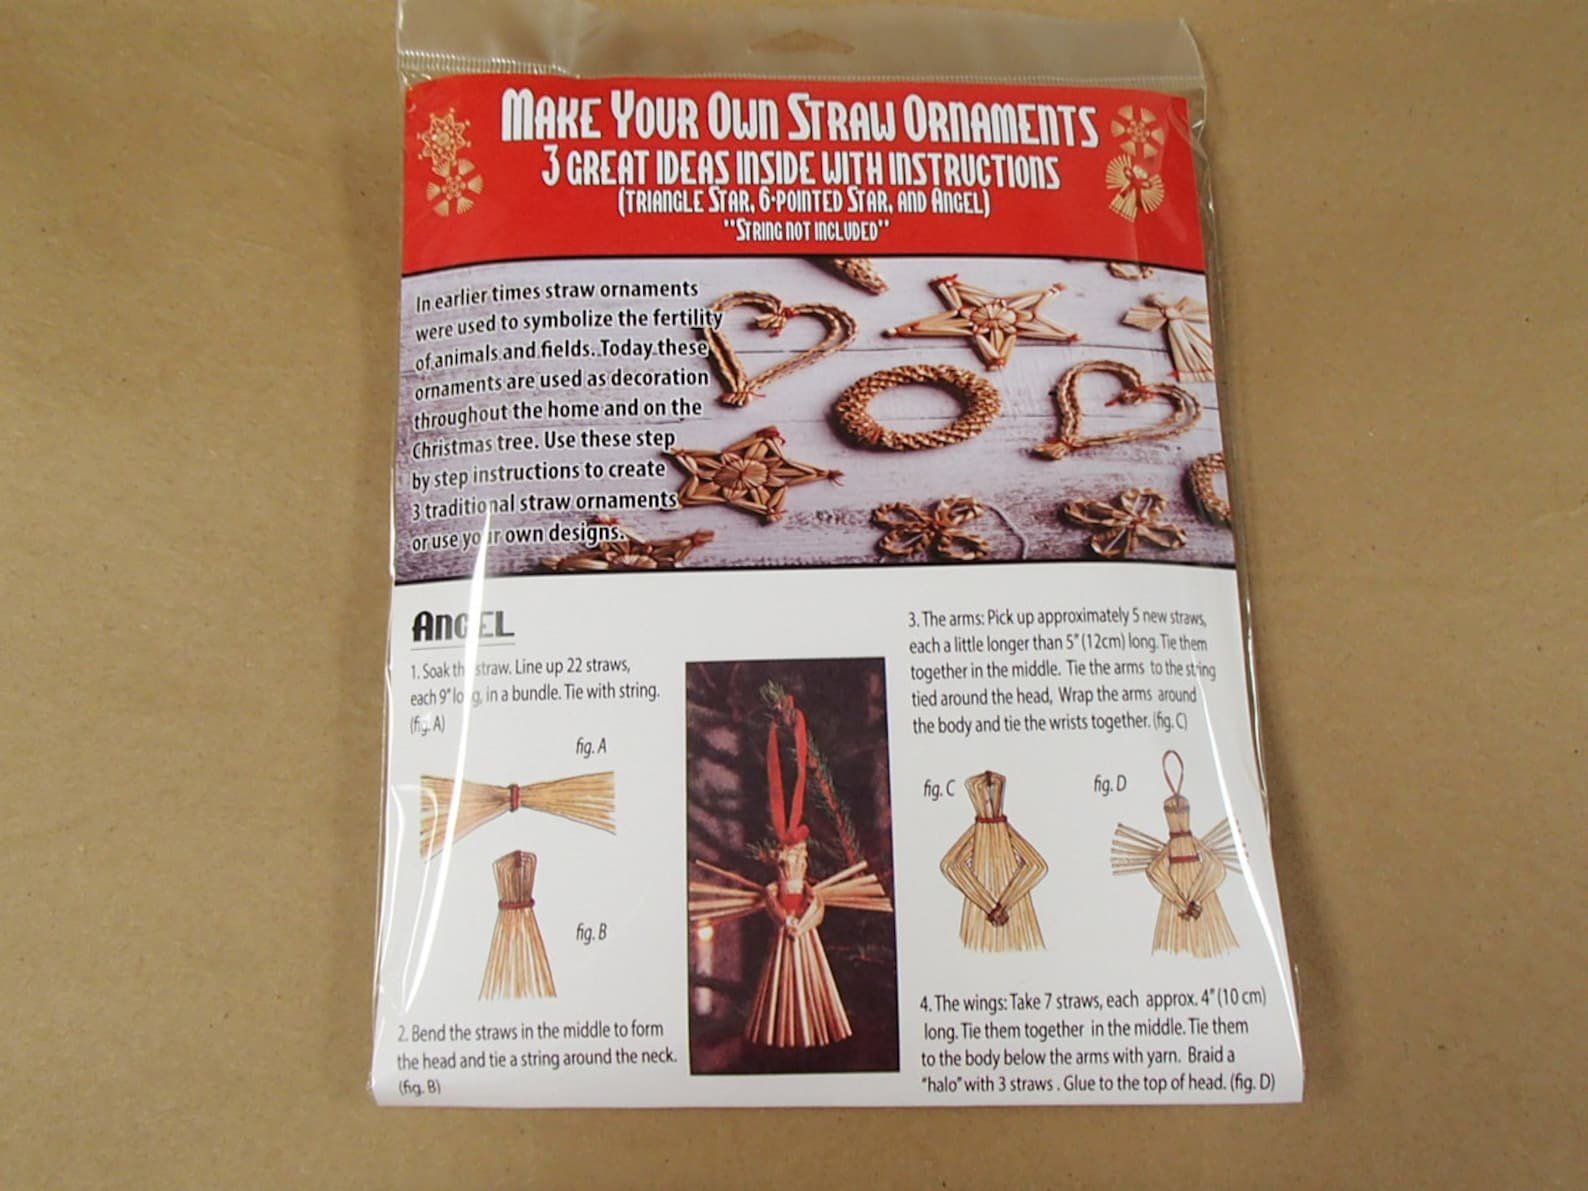 Straw Kit for Making Your Own Straw Ornaments #1499